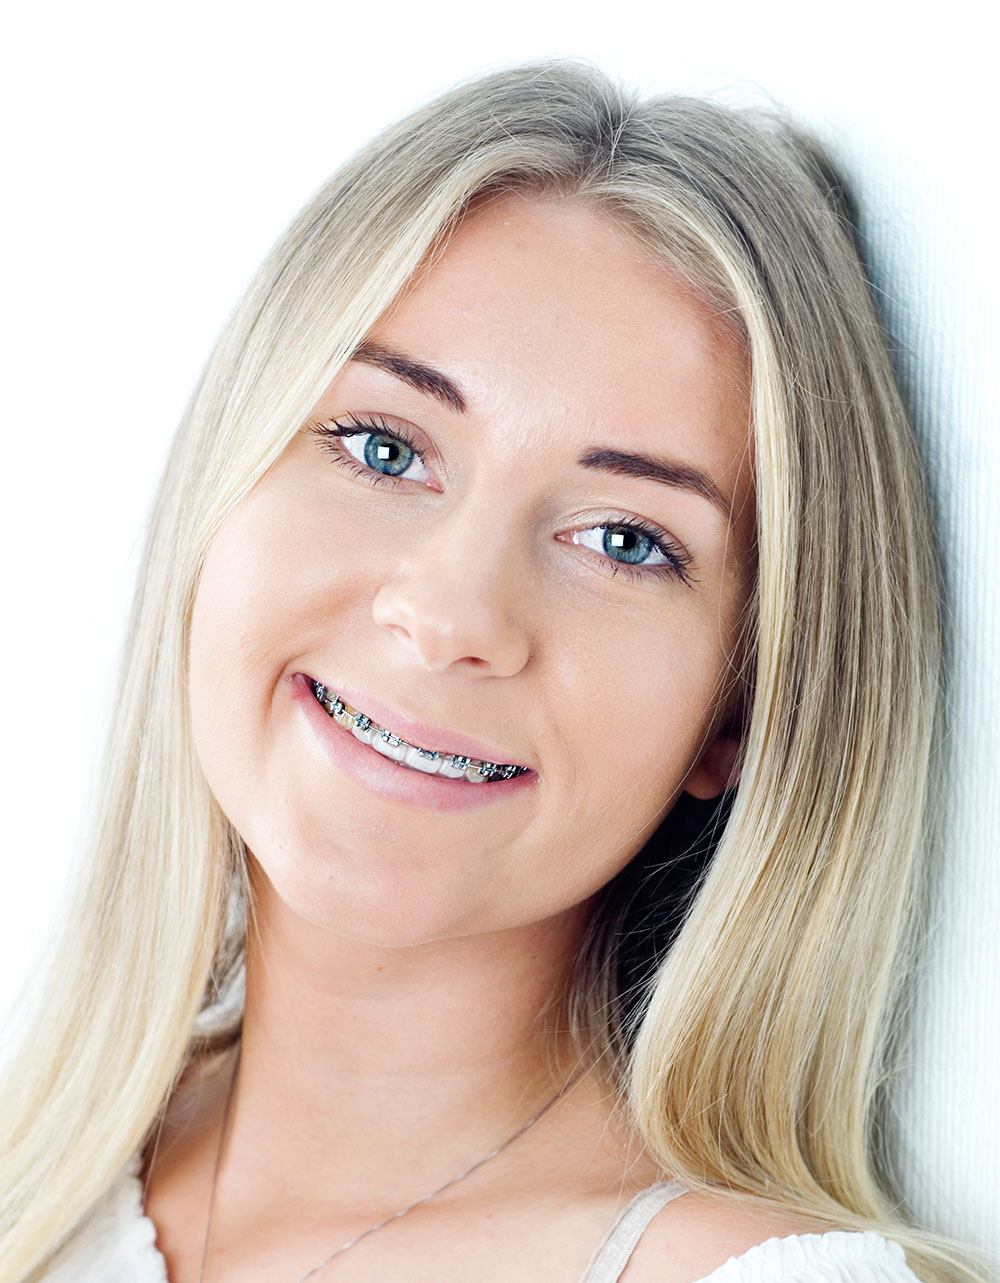 O'Keeffe Orthodontics Smile and Braces